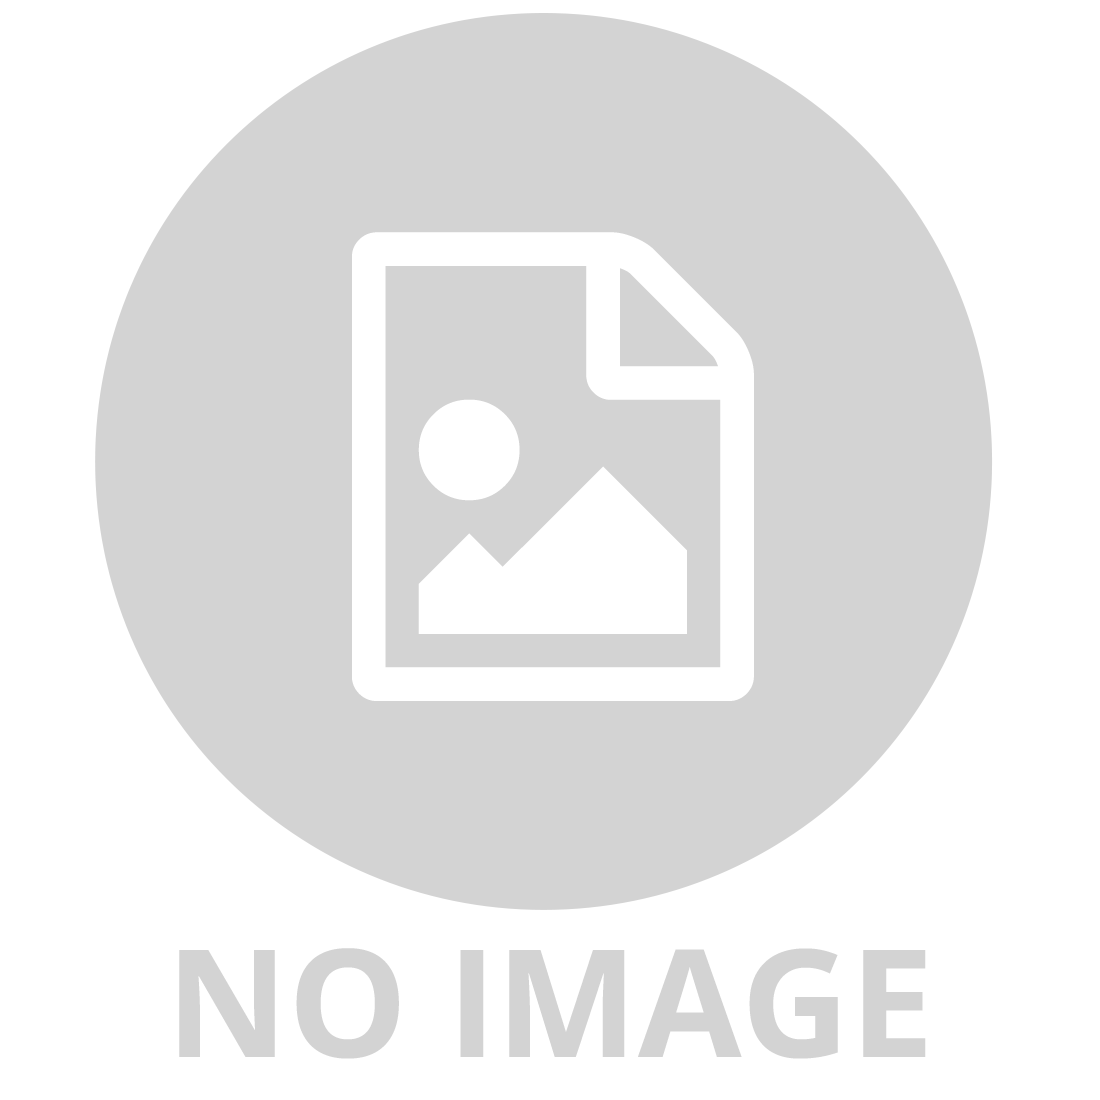 HUMBROL ALL PURPOSE AIR BRUSH